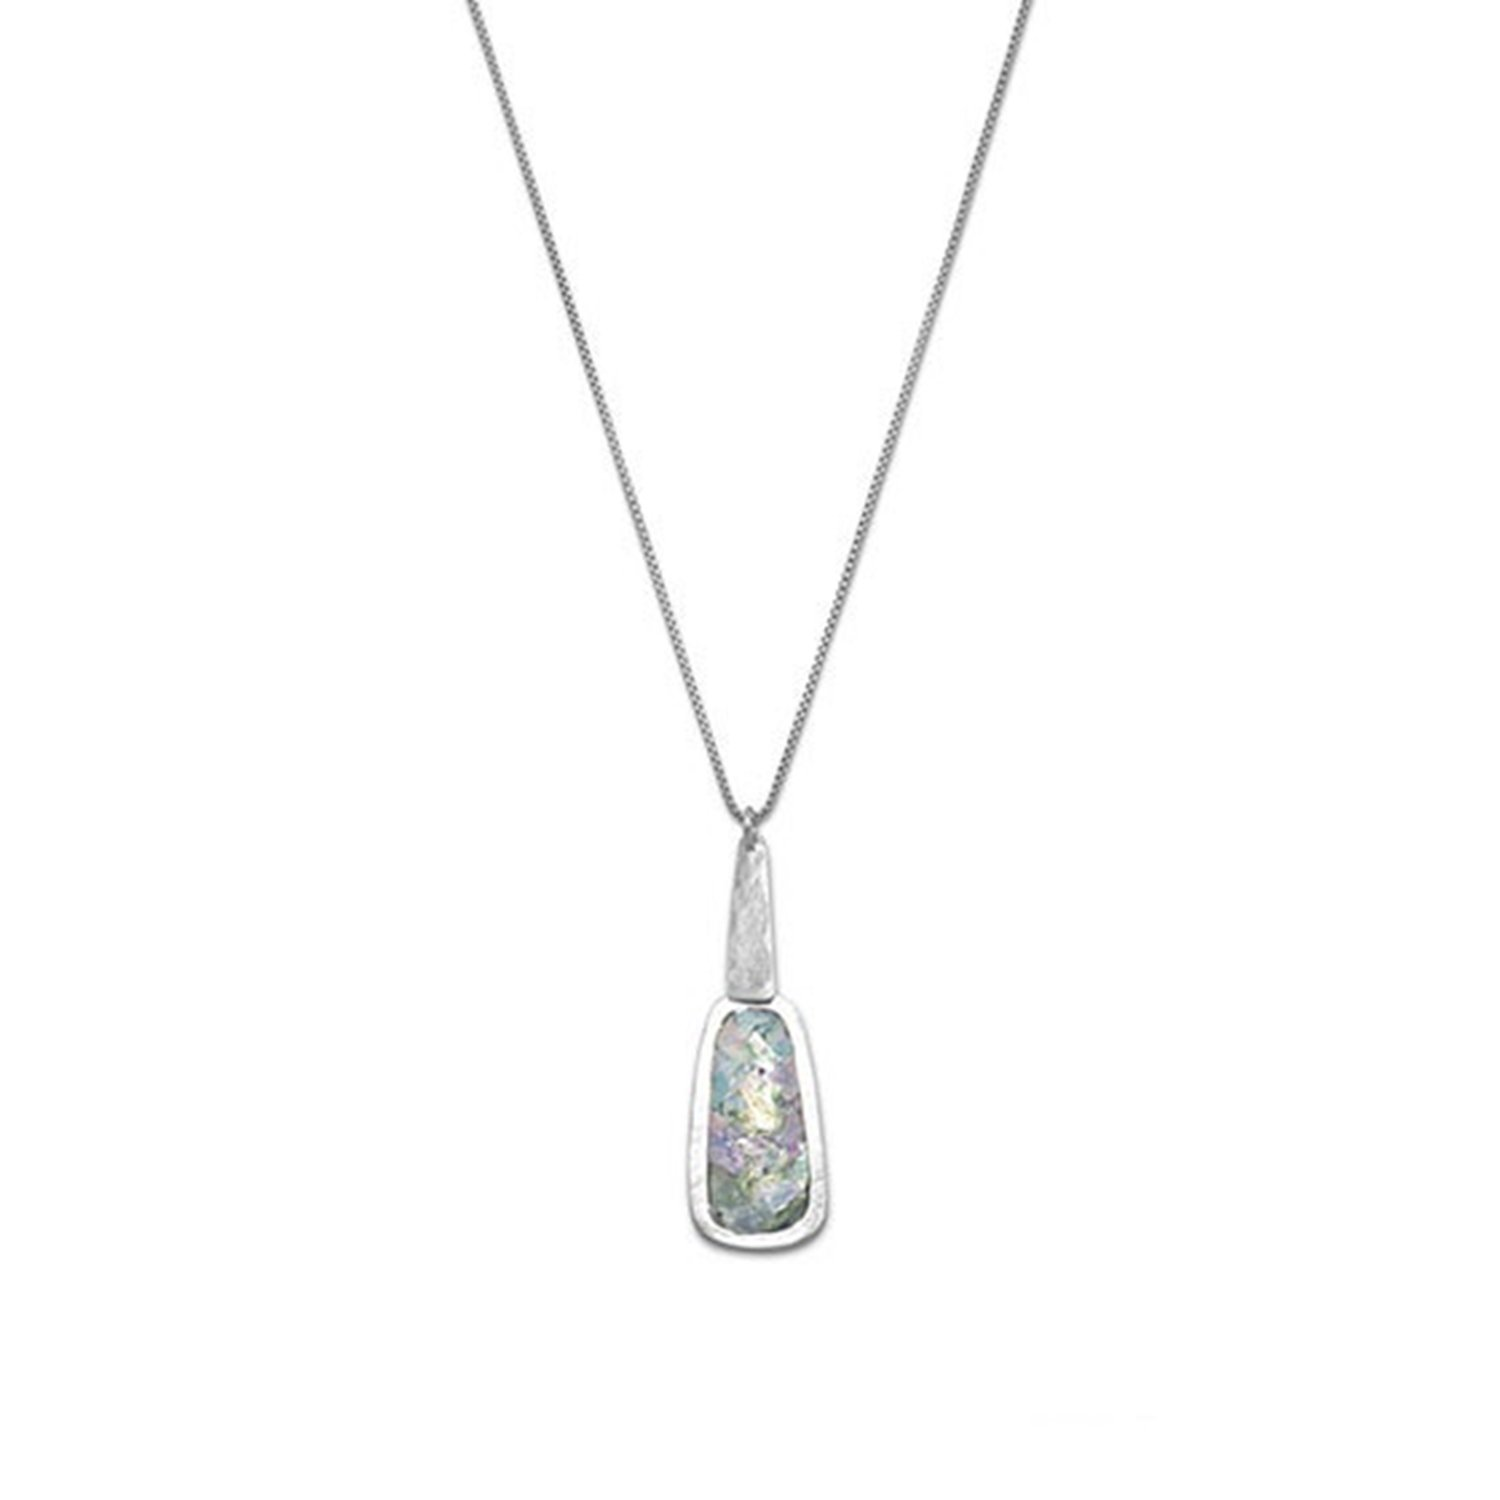 Ancient Roman Glass Necklace Handmade in Israel Sterling Silver with Box Chain